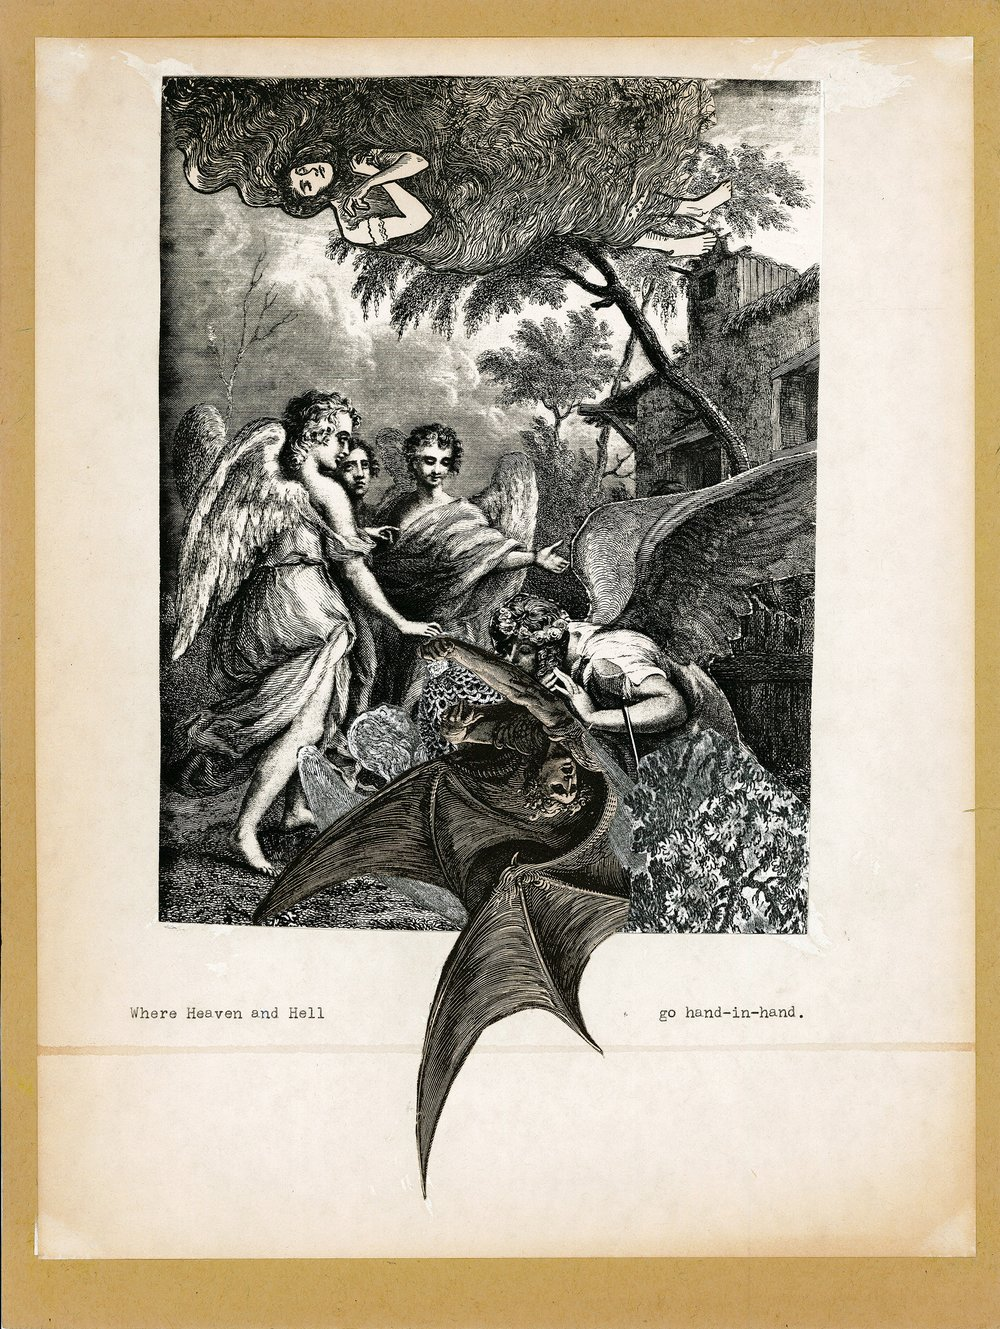 Helen Adam,  In Harpy Land  (excerpt), 1976–77, collage. Credit: The Poetry Collection of the University Libraries, University at Buffalo, The State University of New York.